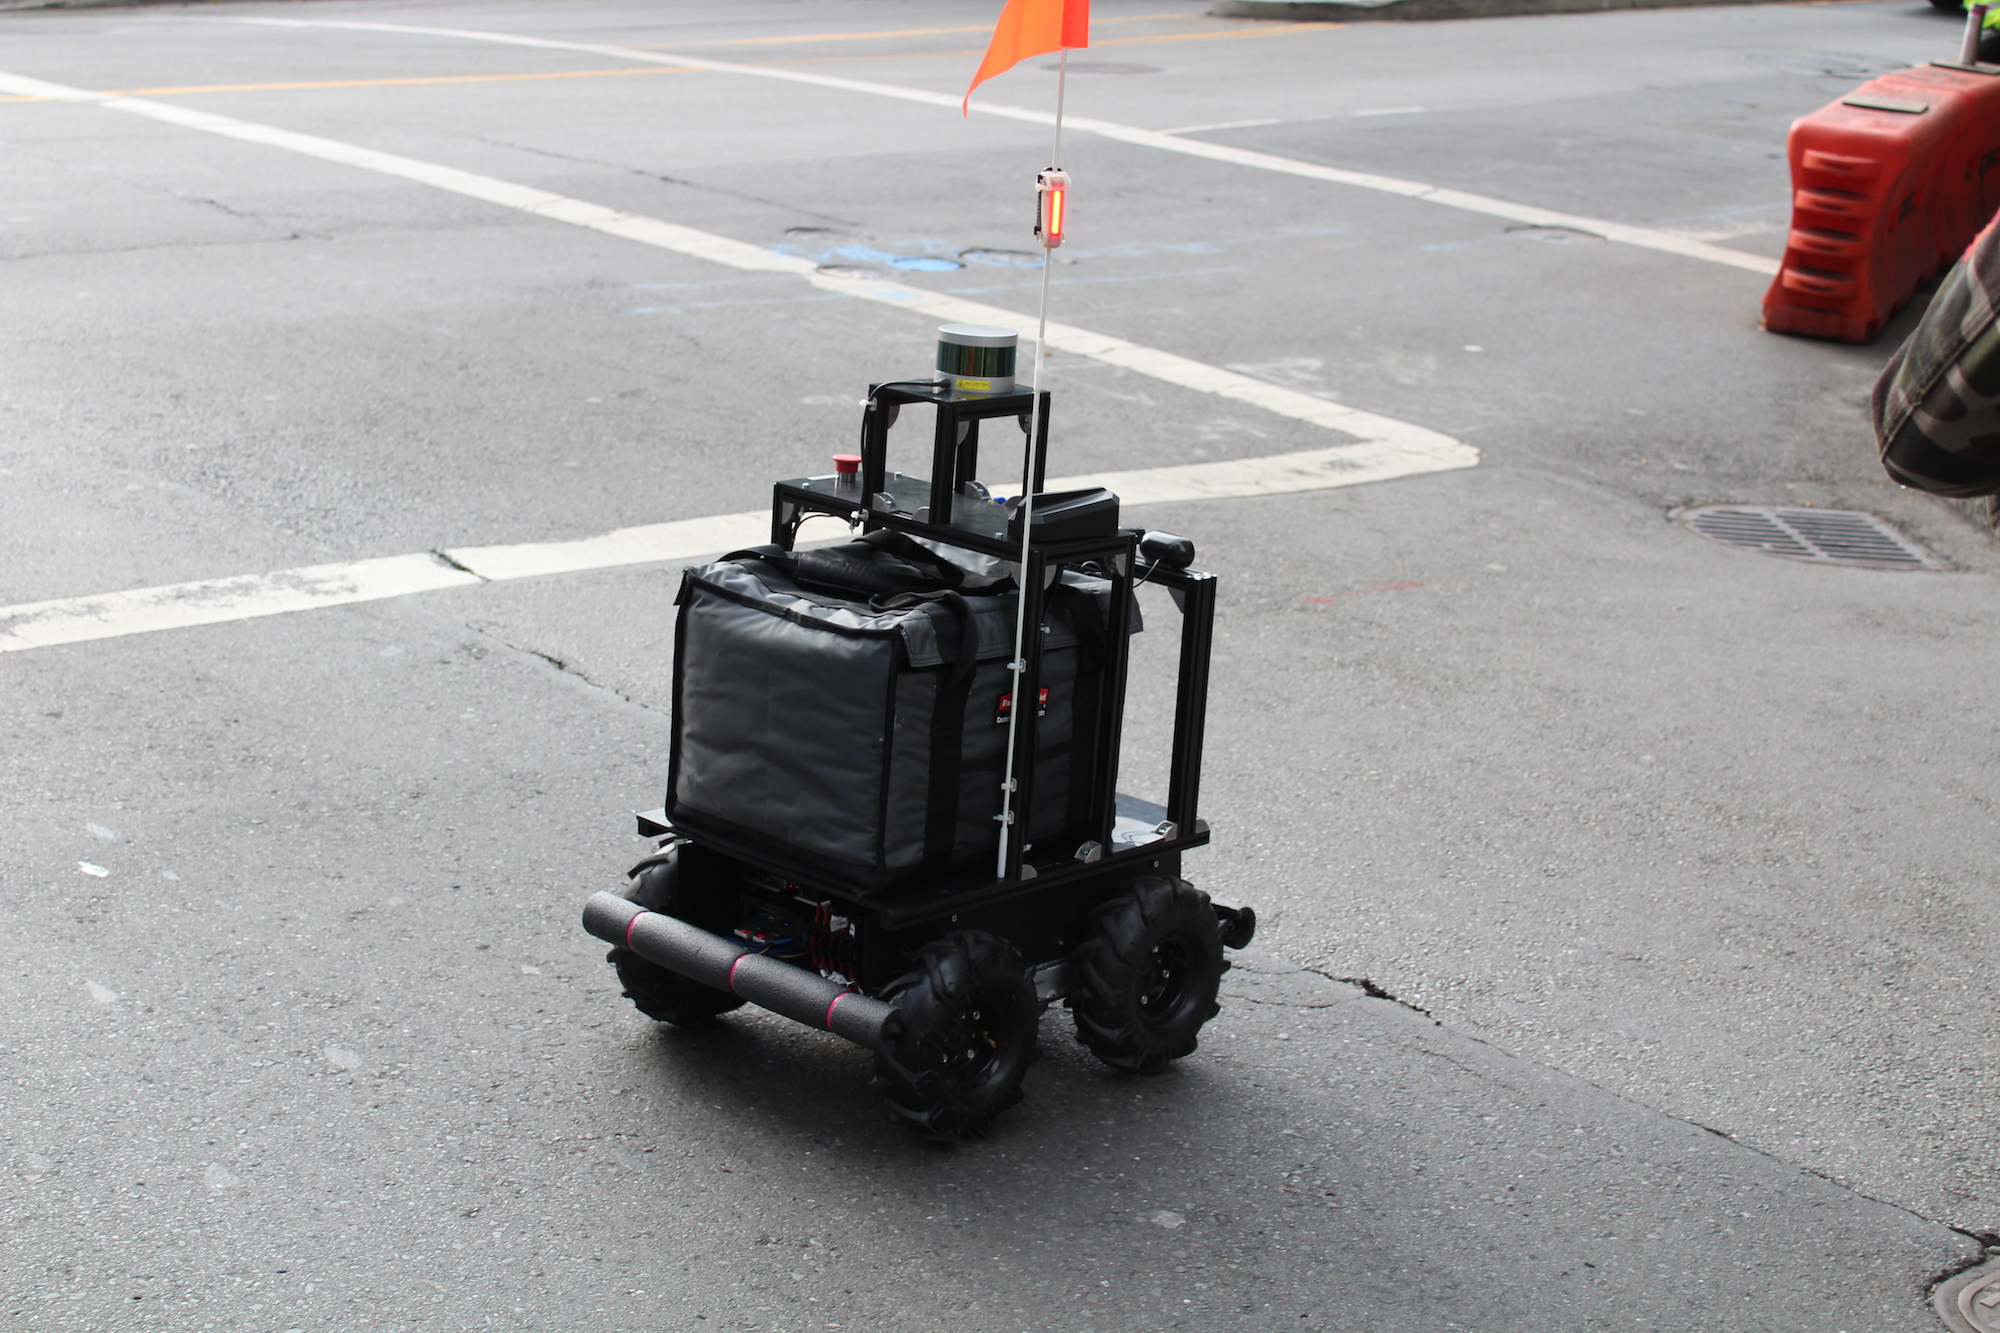 Delivery Robot Spotted In San Francisco The Last Driver